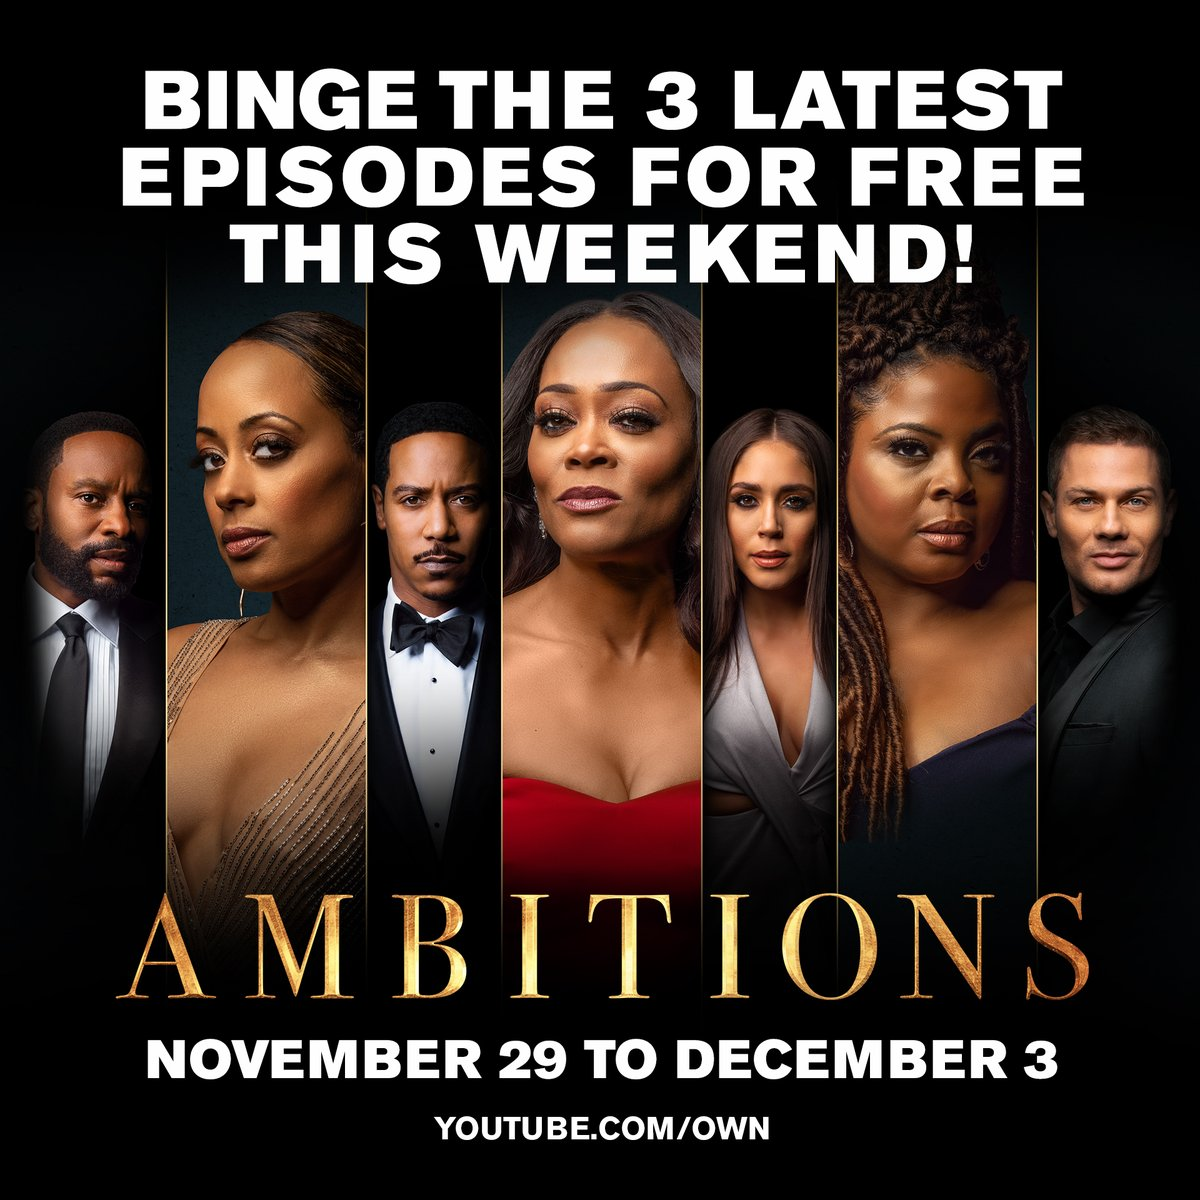 Today is your LAST DAY to catch up on the recent #Ambitions episodes, for FREE! Catch up right now so that youre ready for tomorrows all new episode at 10|9c. owntv.com/33yMXuj